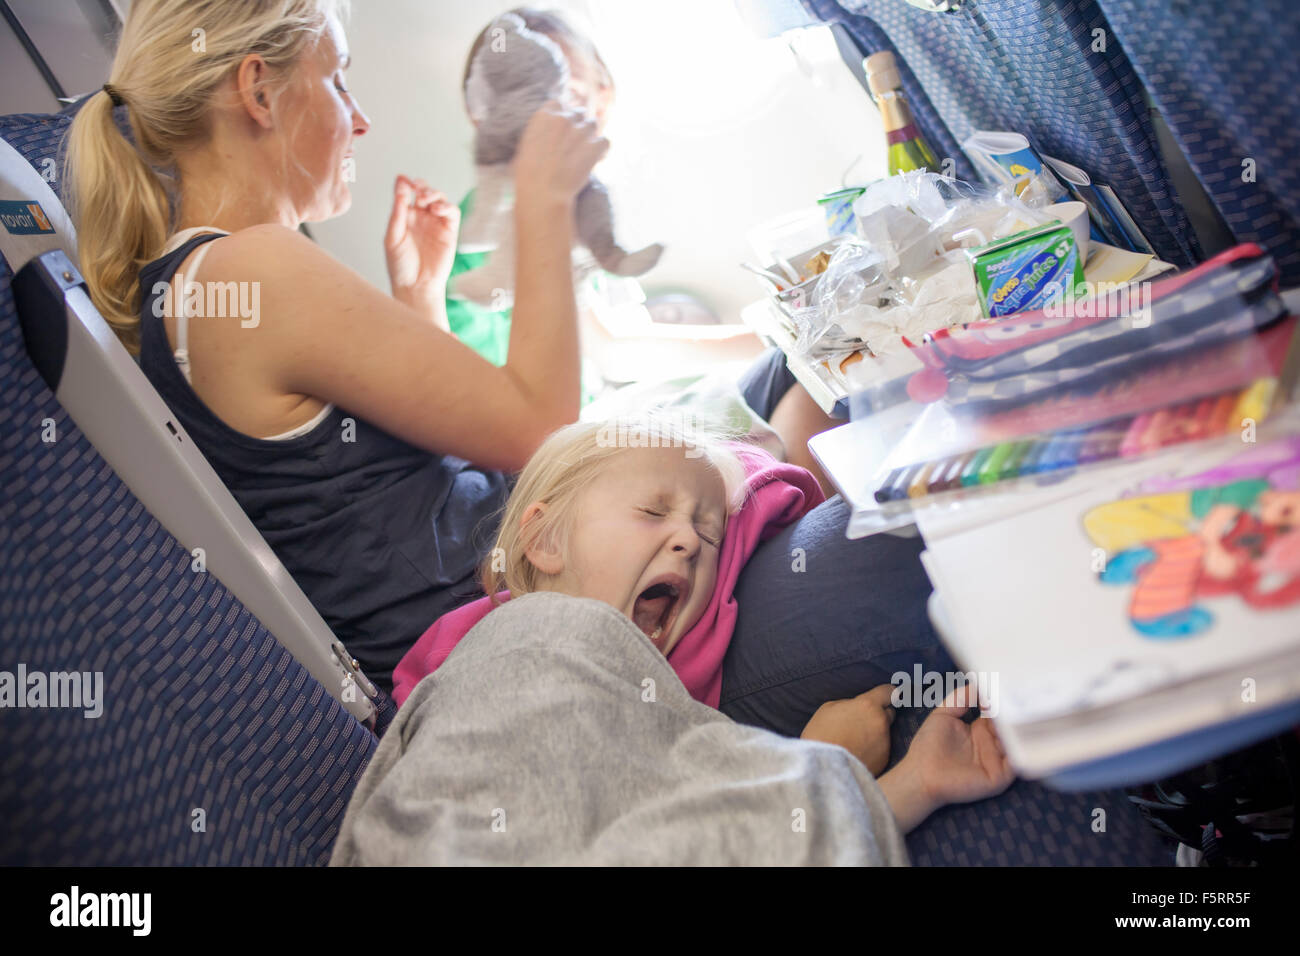 Sweden, Woman with yawning child on plane - Stock Image